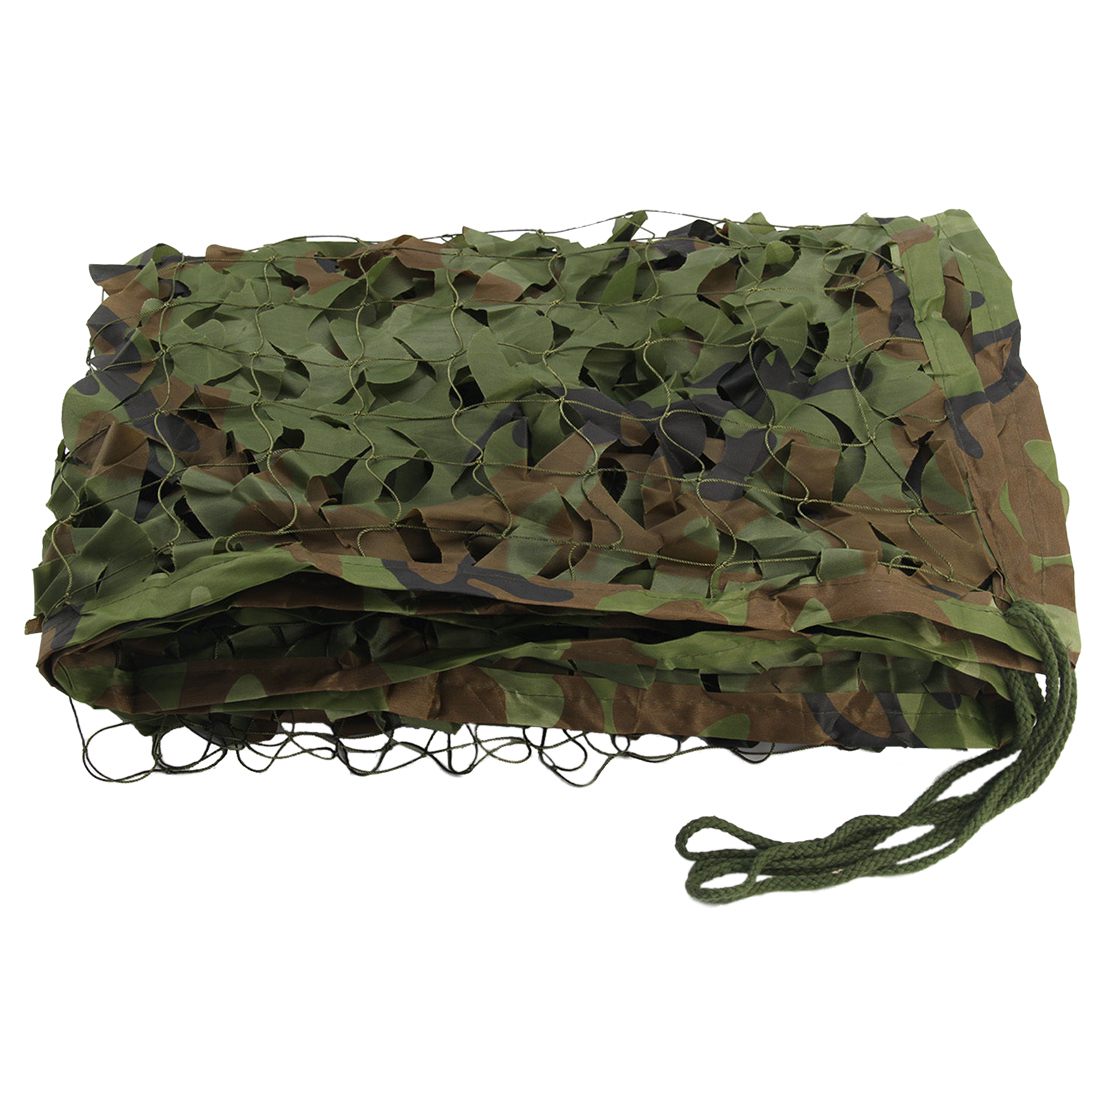 New Oxford Fabric Camouflage Net/Camo Netting Hunting/Shooting Hide Army, 3M x 5M, 3.5M x 2.7M